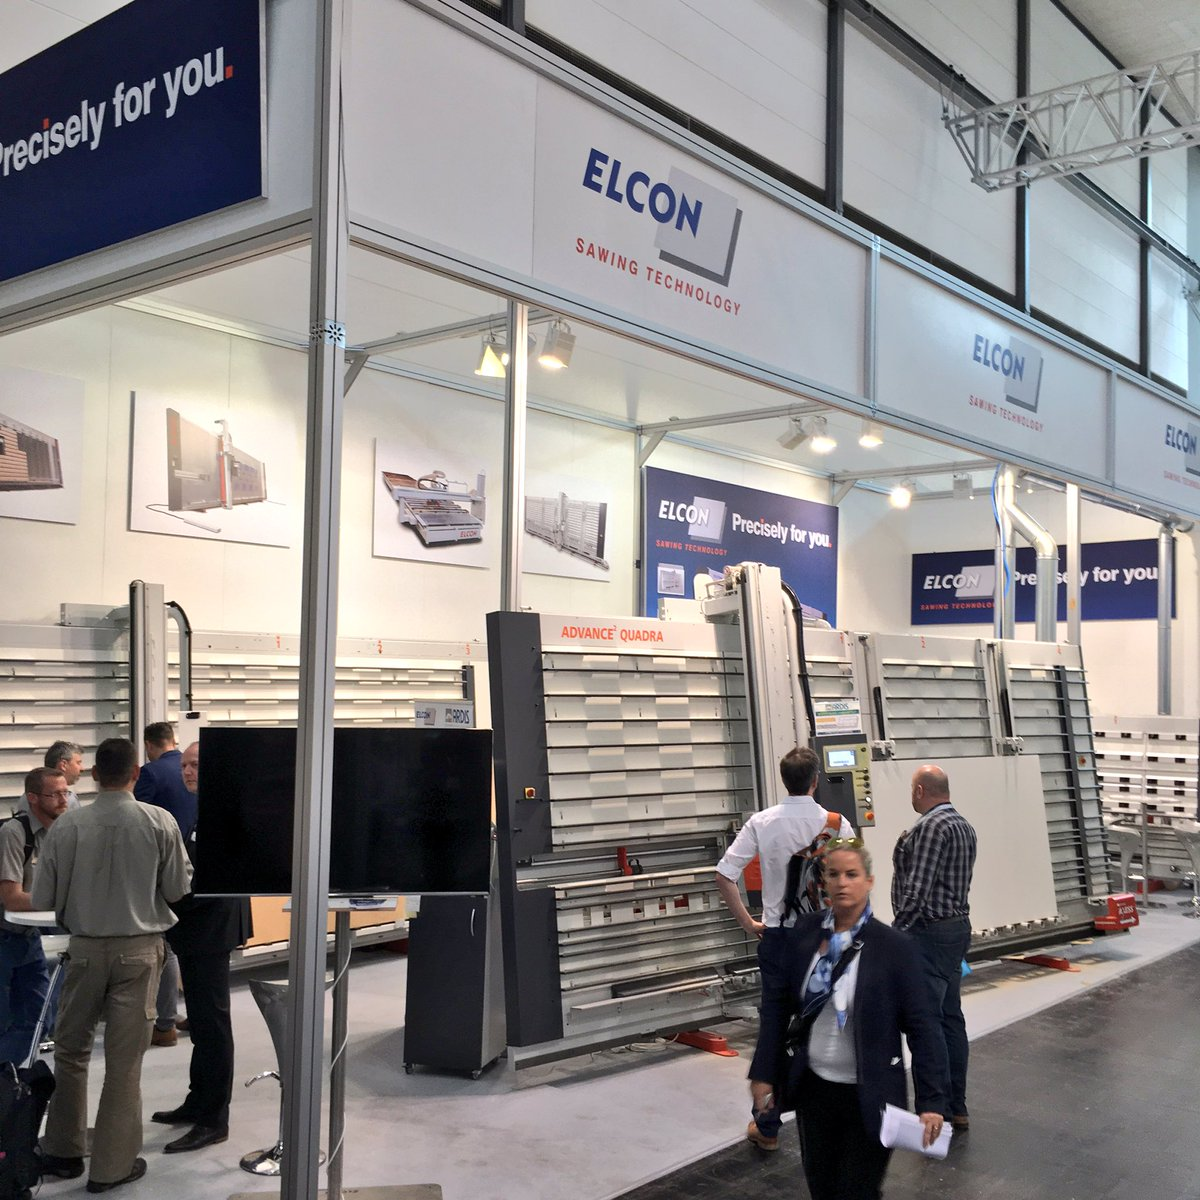 Elcon - elected, everyone&#39;s favourite Vertical Panel saw. Precisely for you. #ligna #Ligna2017 #Limpio #Quadra<br>http://pic.twitter.com/88FlLSQOEu &ndash; bij Hannover Messe